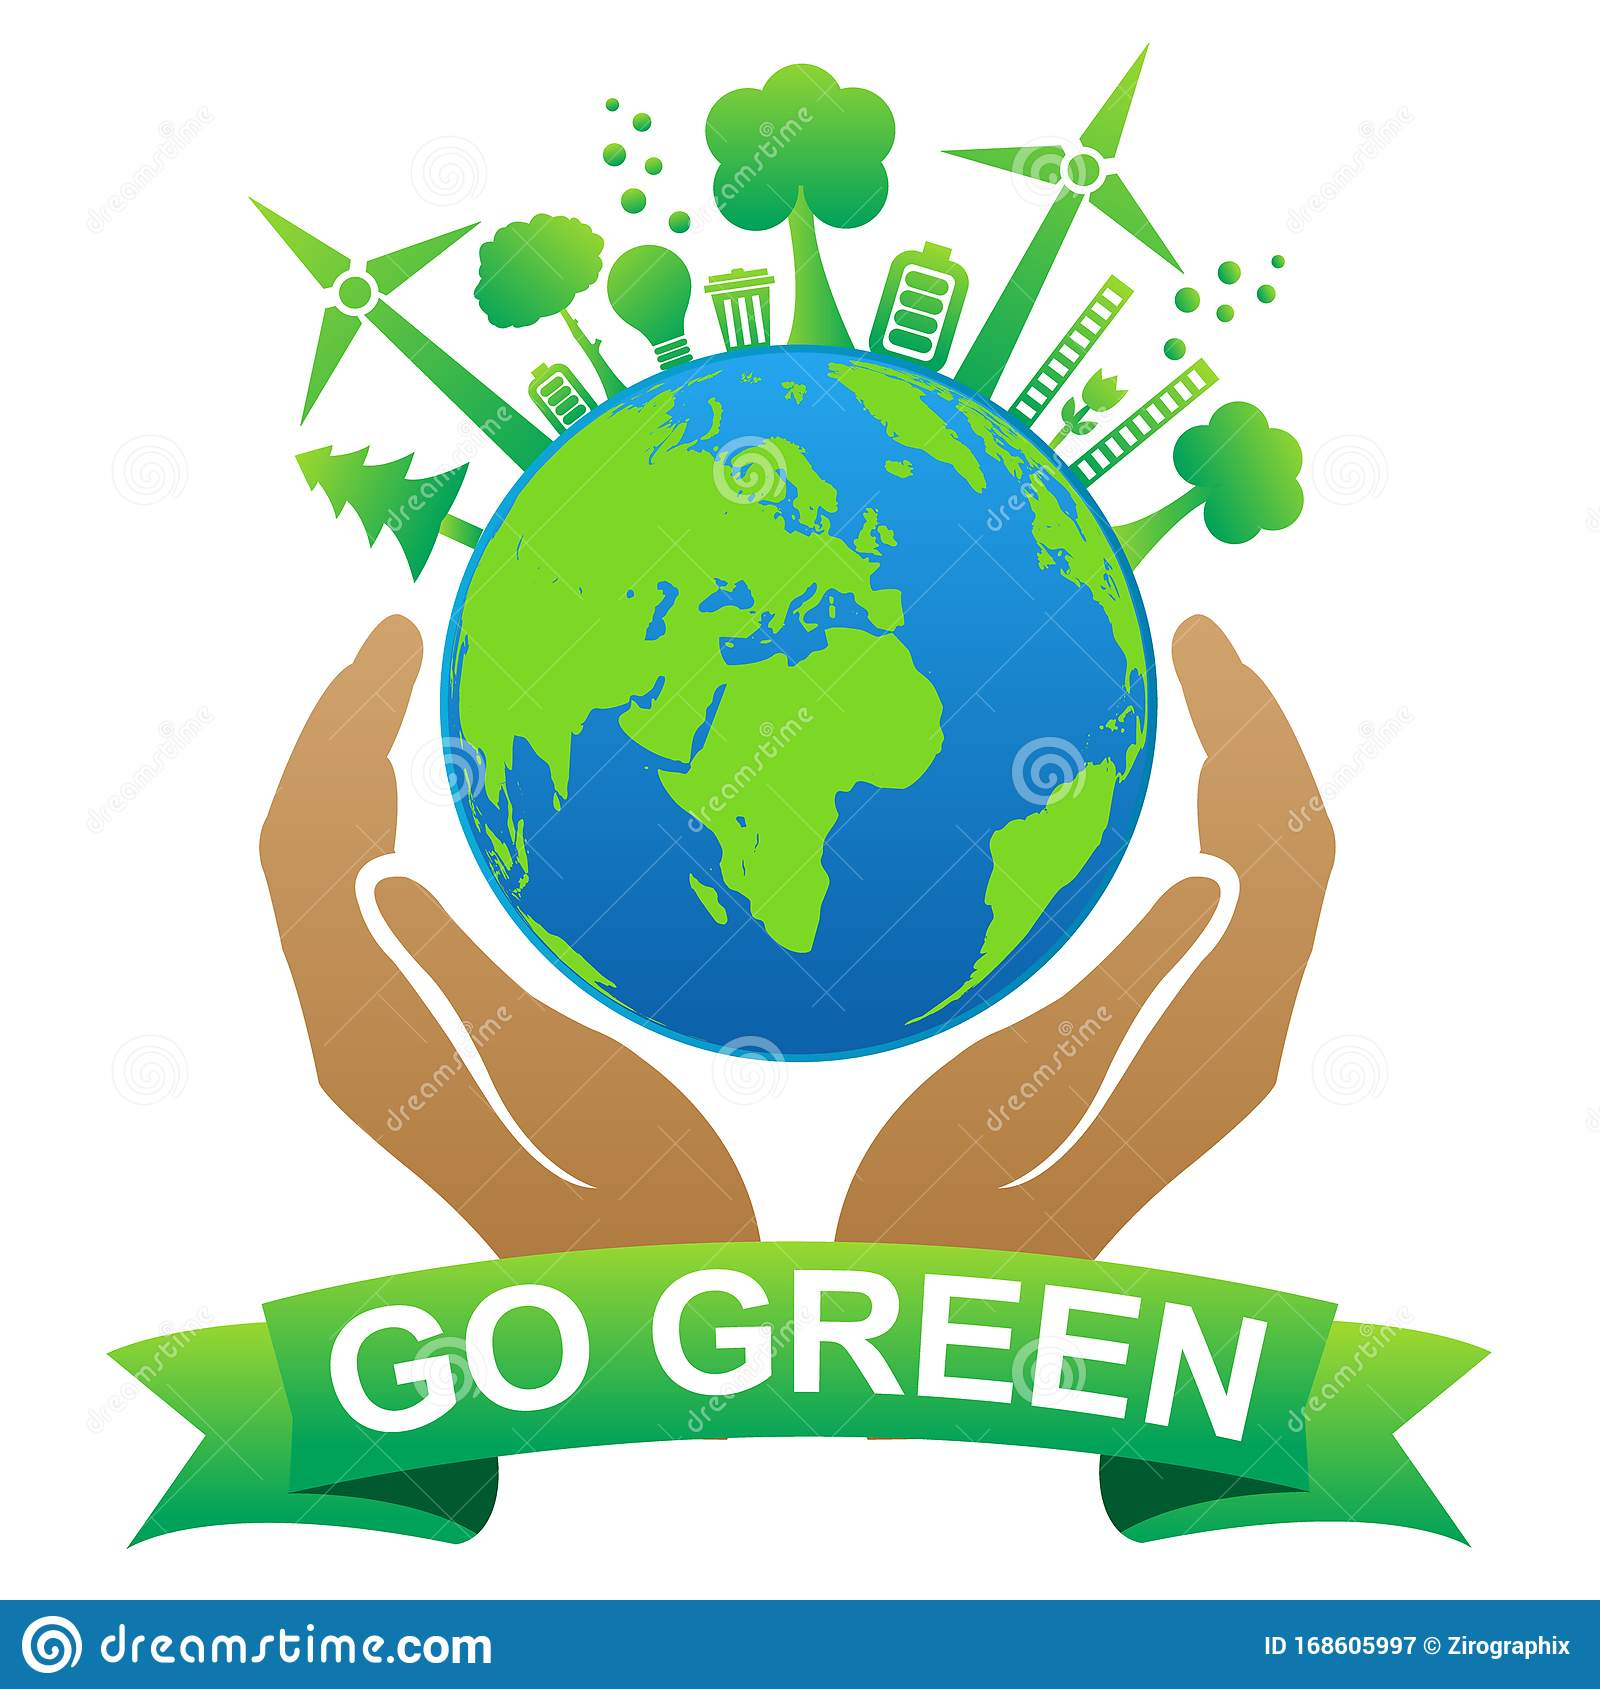 Go Green Save Earth Illustration Stock Vector Illustration Of World Background 168605997